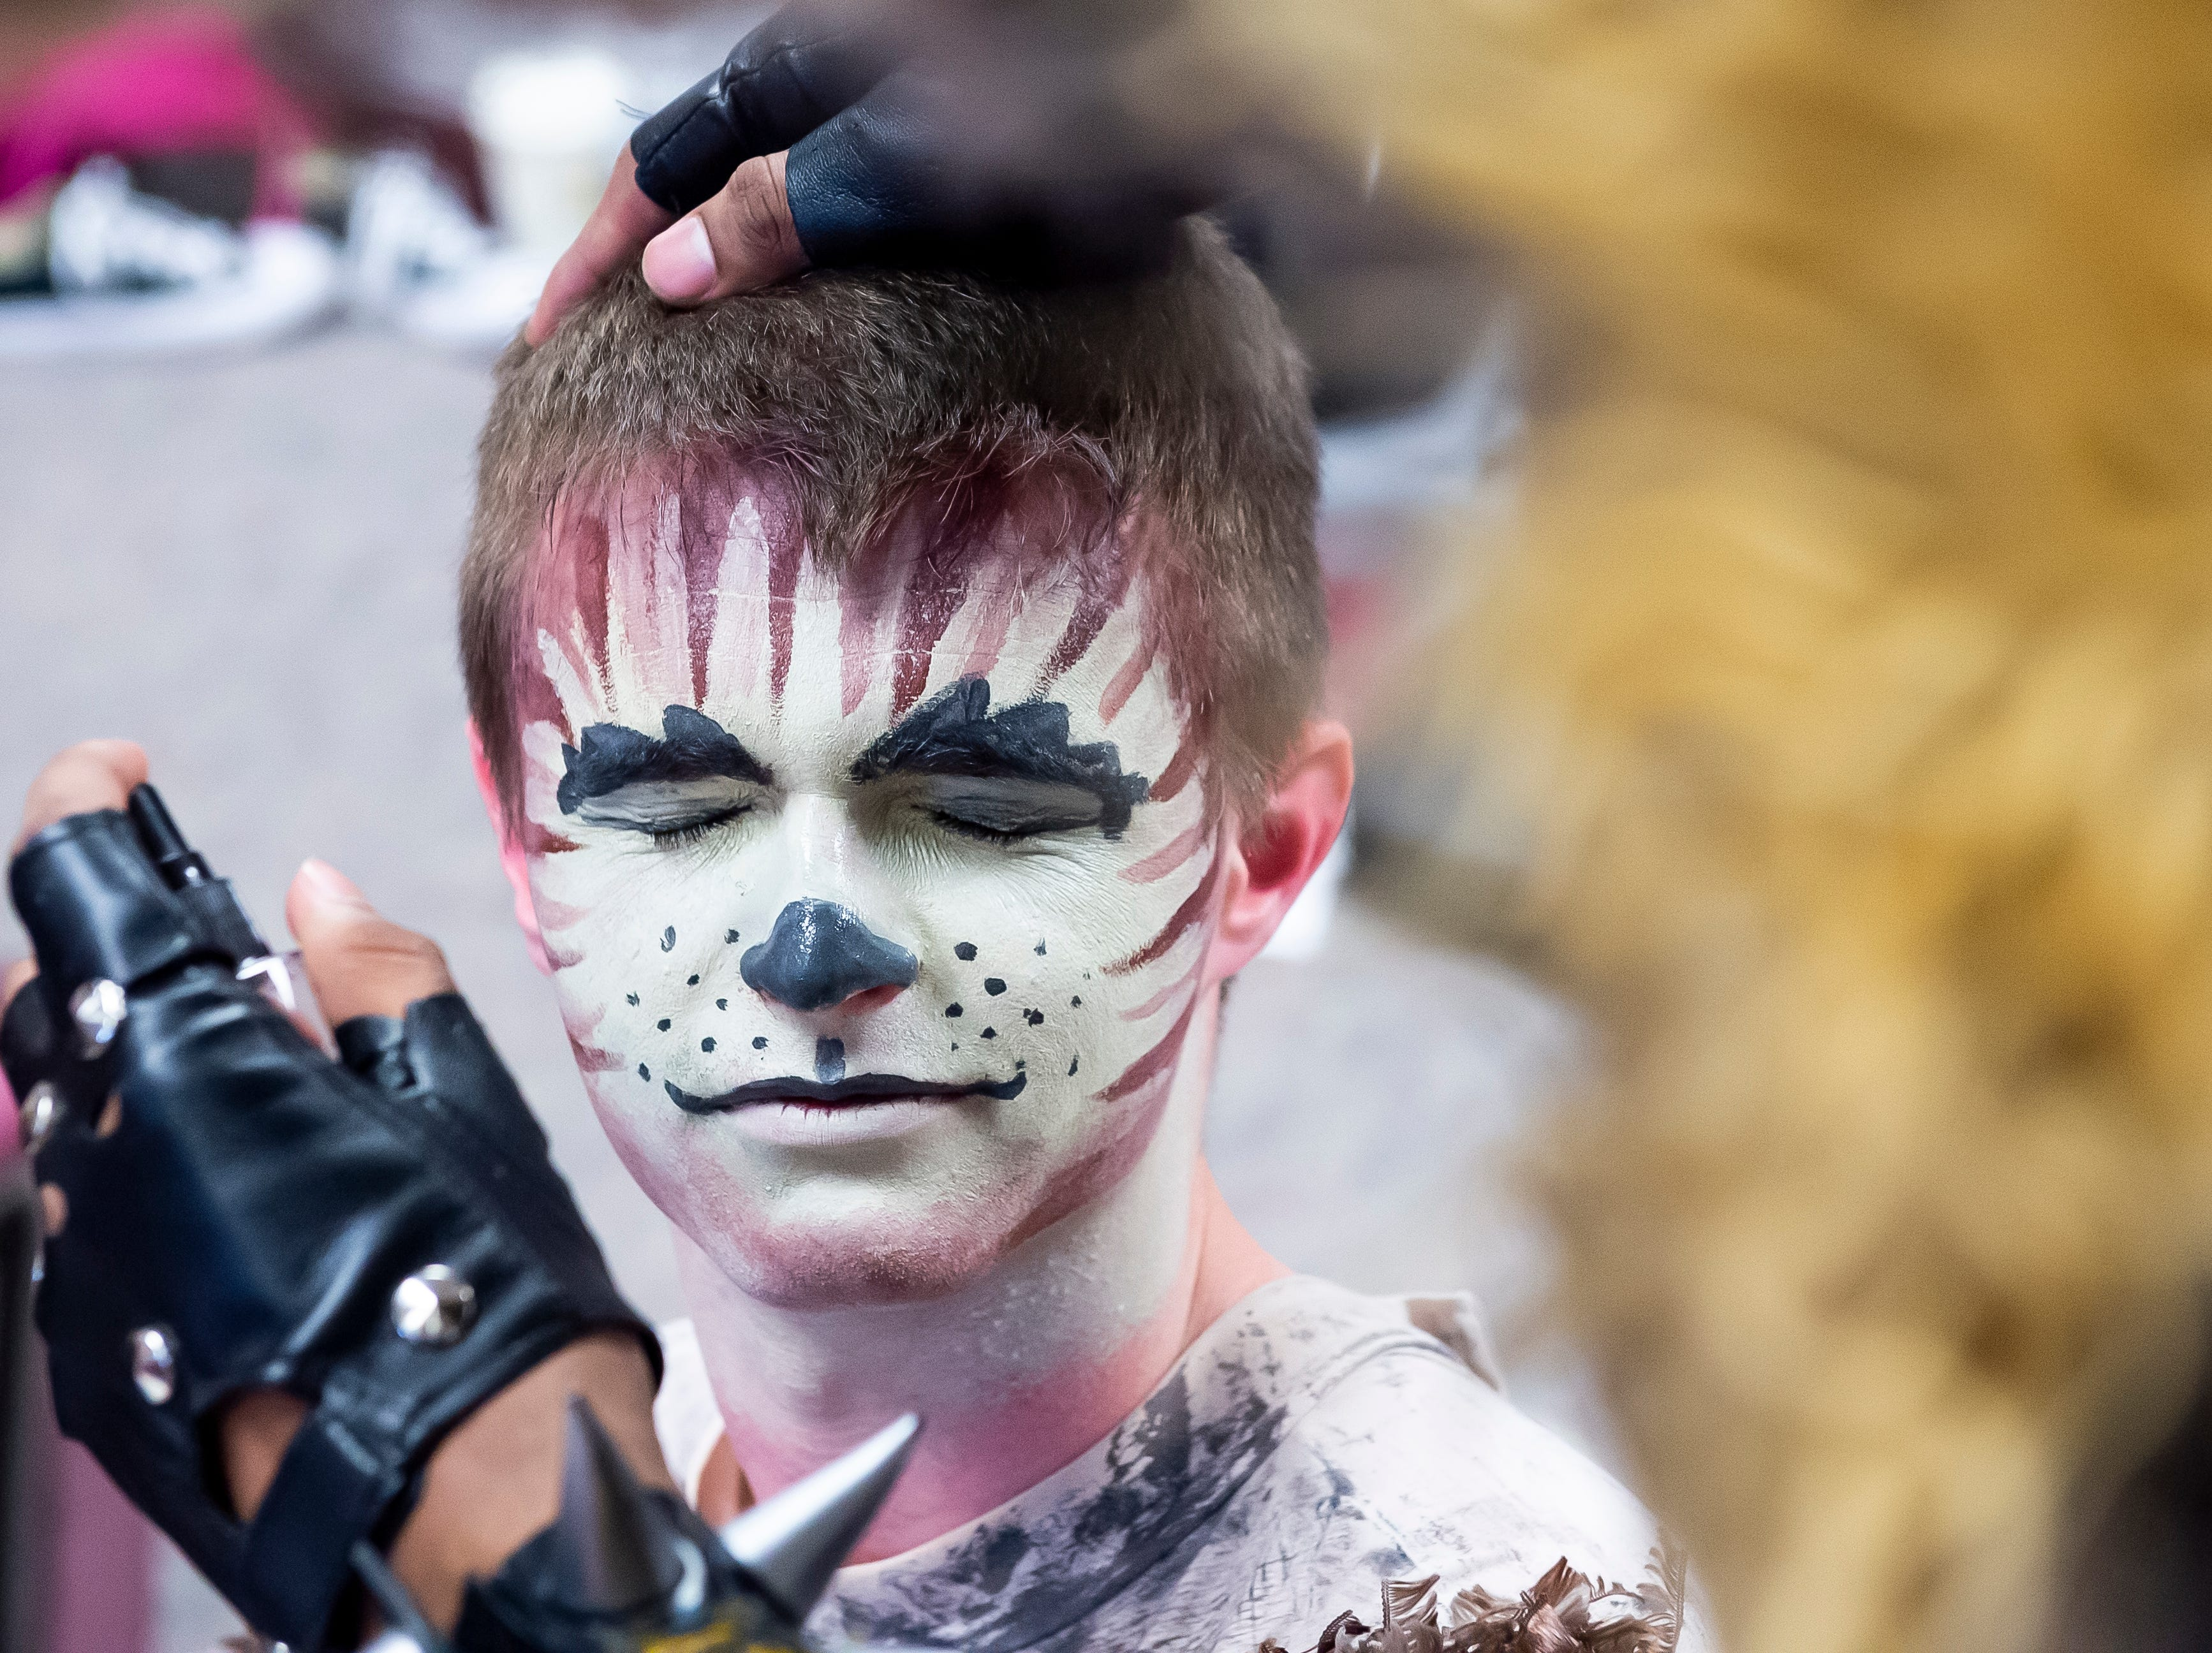 """Senior Matthew Hutton gets some makeup setting spray applied to his face before the start of a dress rehearsal for the Hanover High School production of """"Cats"""" on Wednesday, April 10, 2019."""